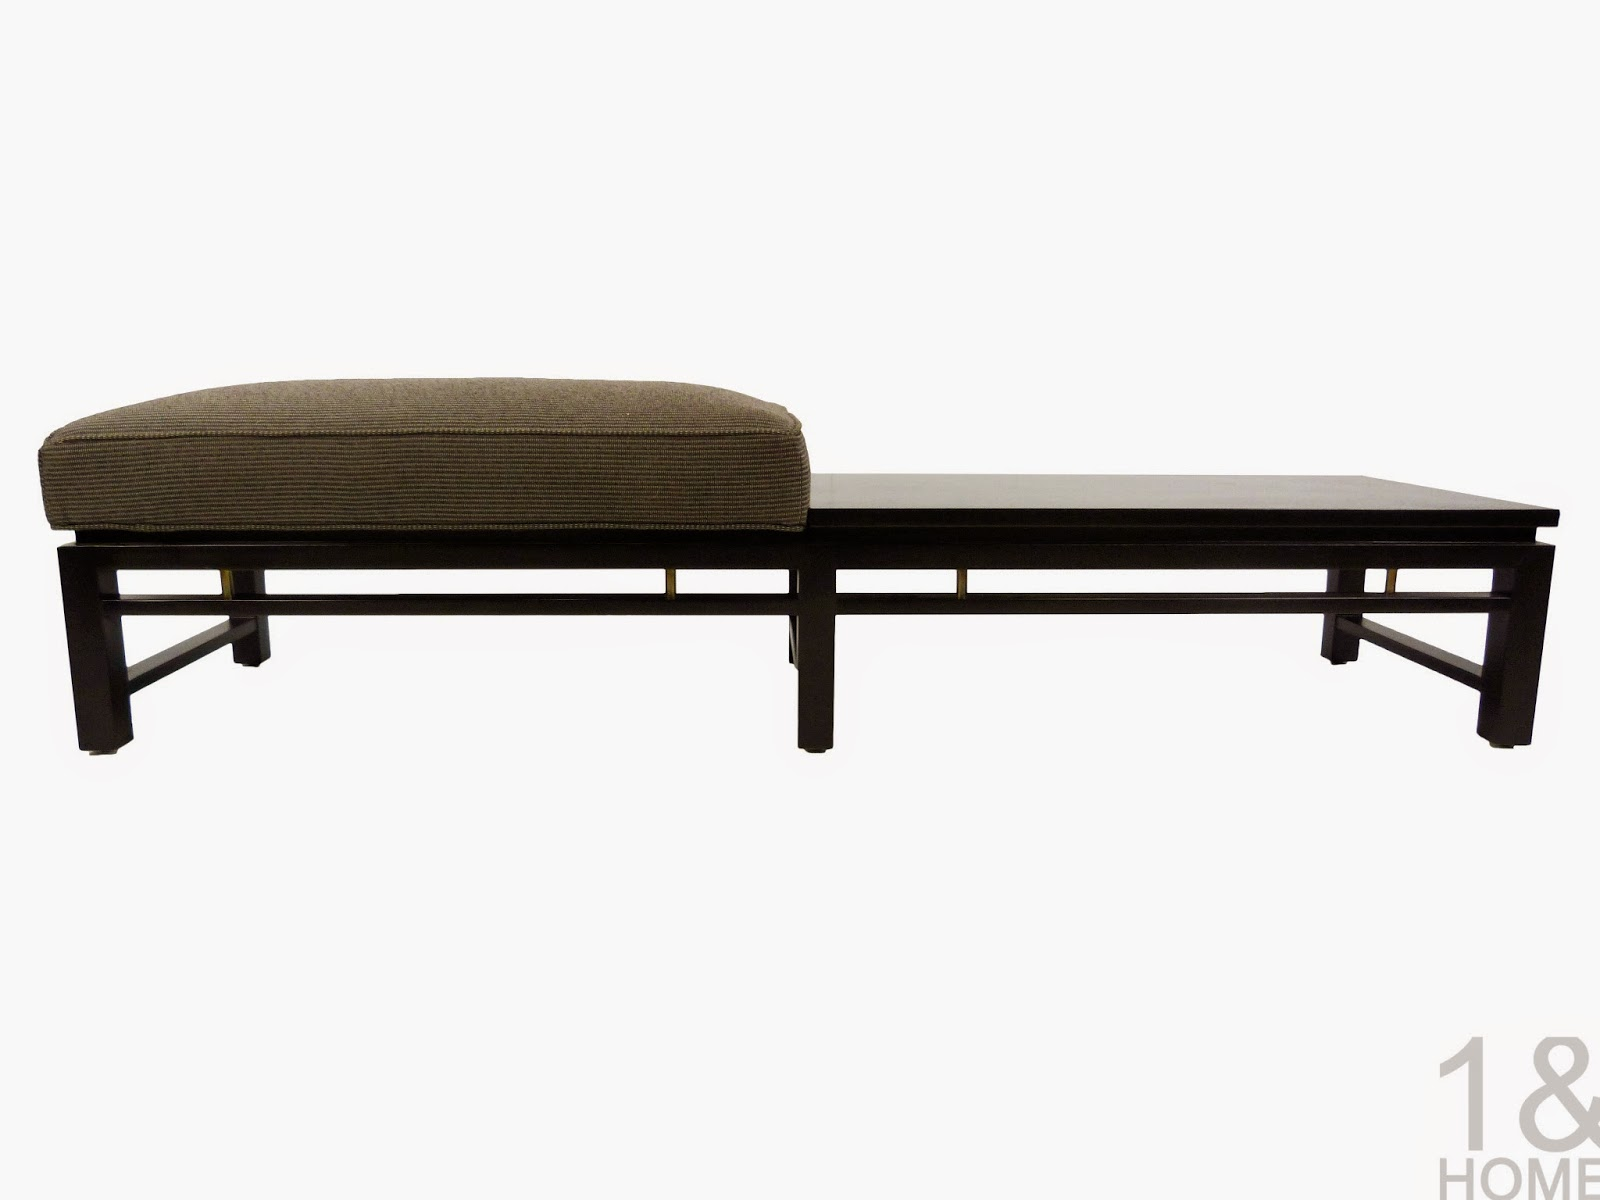 Ebonized Dunbar Bench Table Edward Wormley Mid-Century Modern